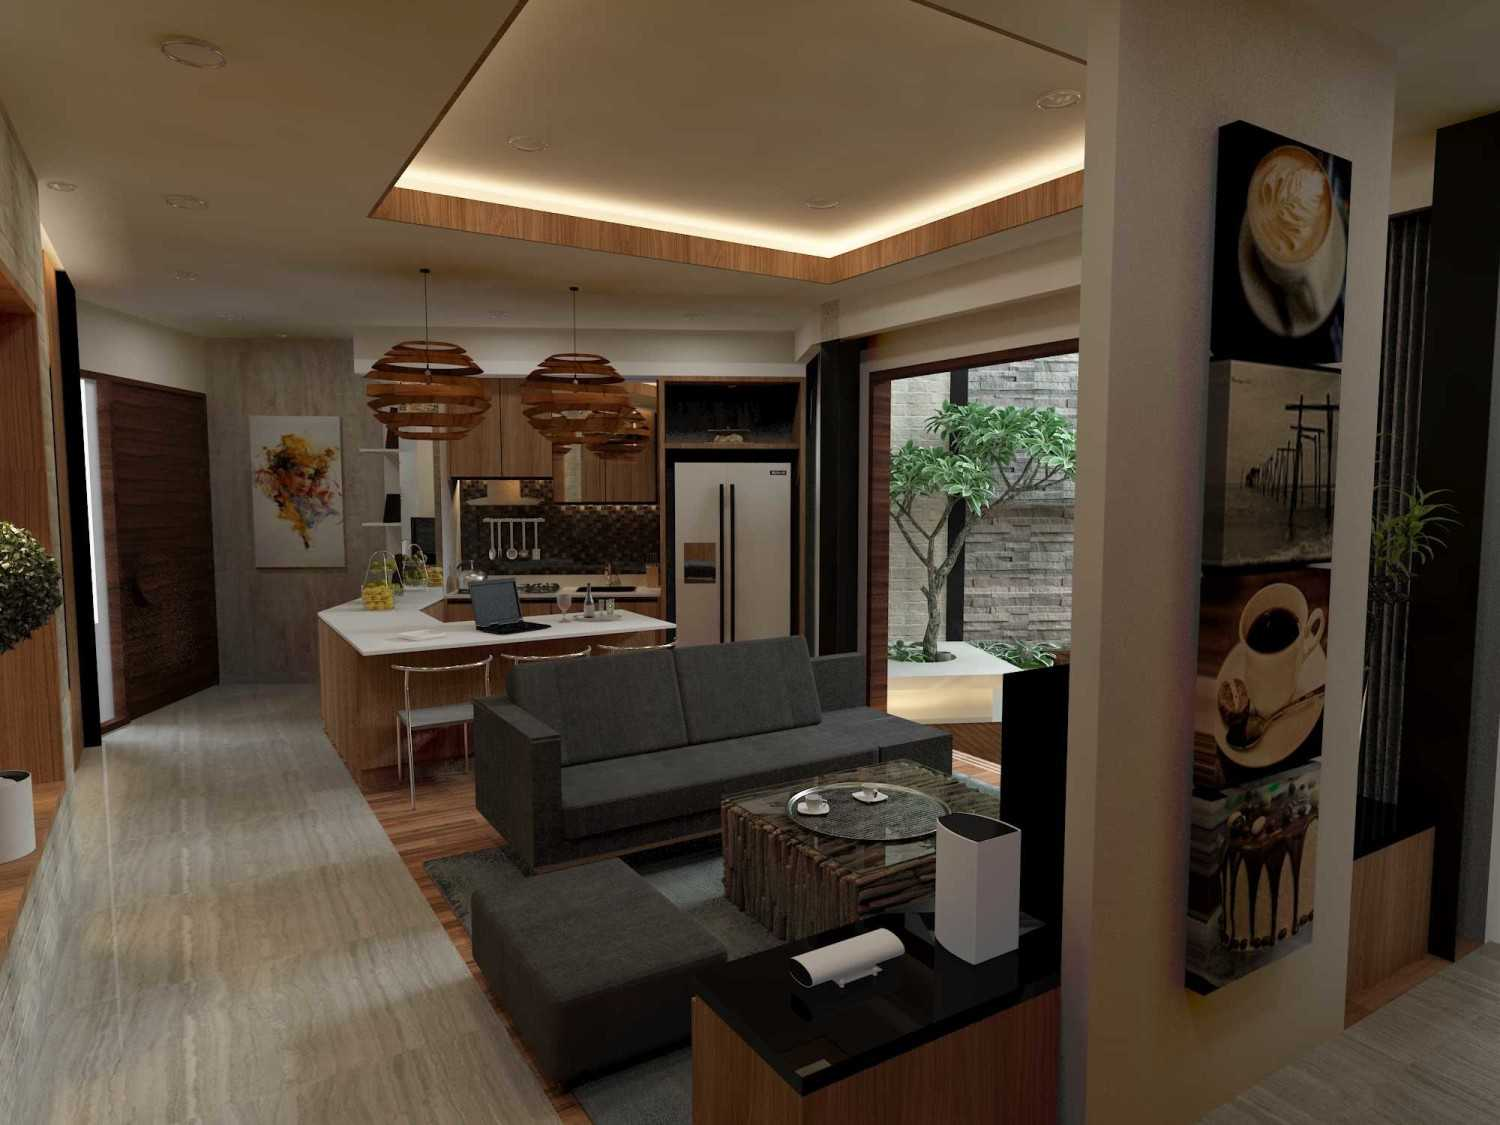 Alima Studio Residential At Bali Bali, Indonesia Bali, Indonesia Living And Dining Area  25608